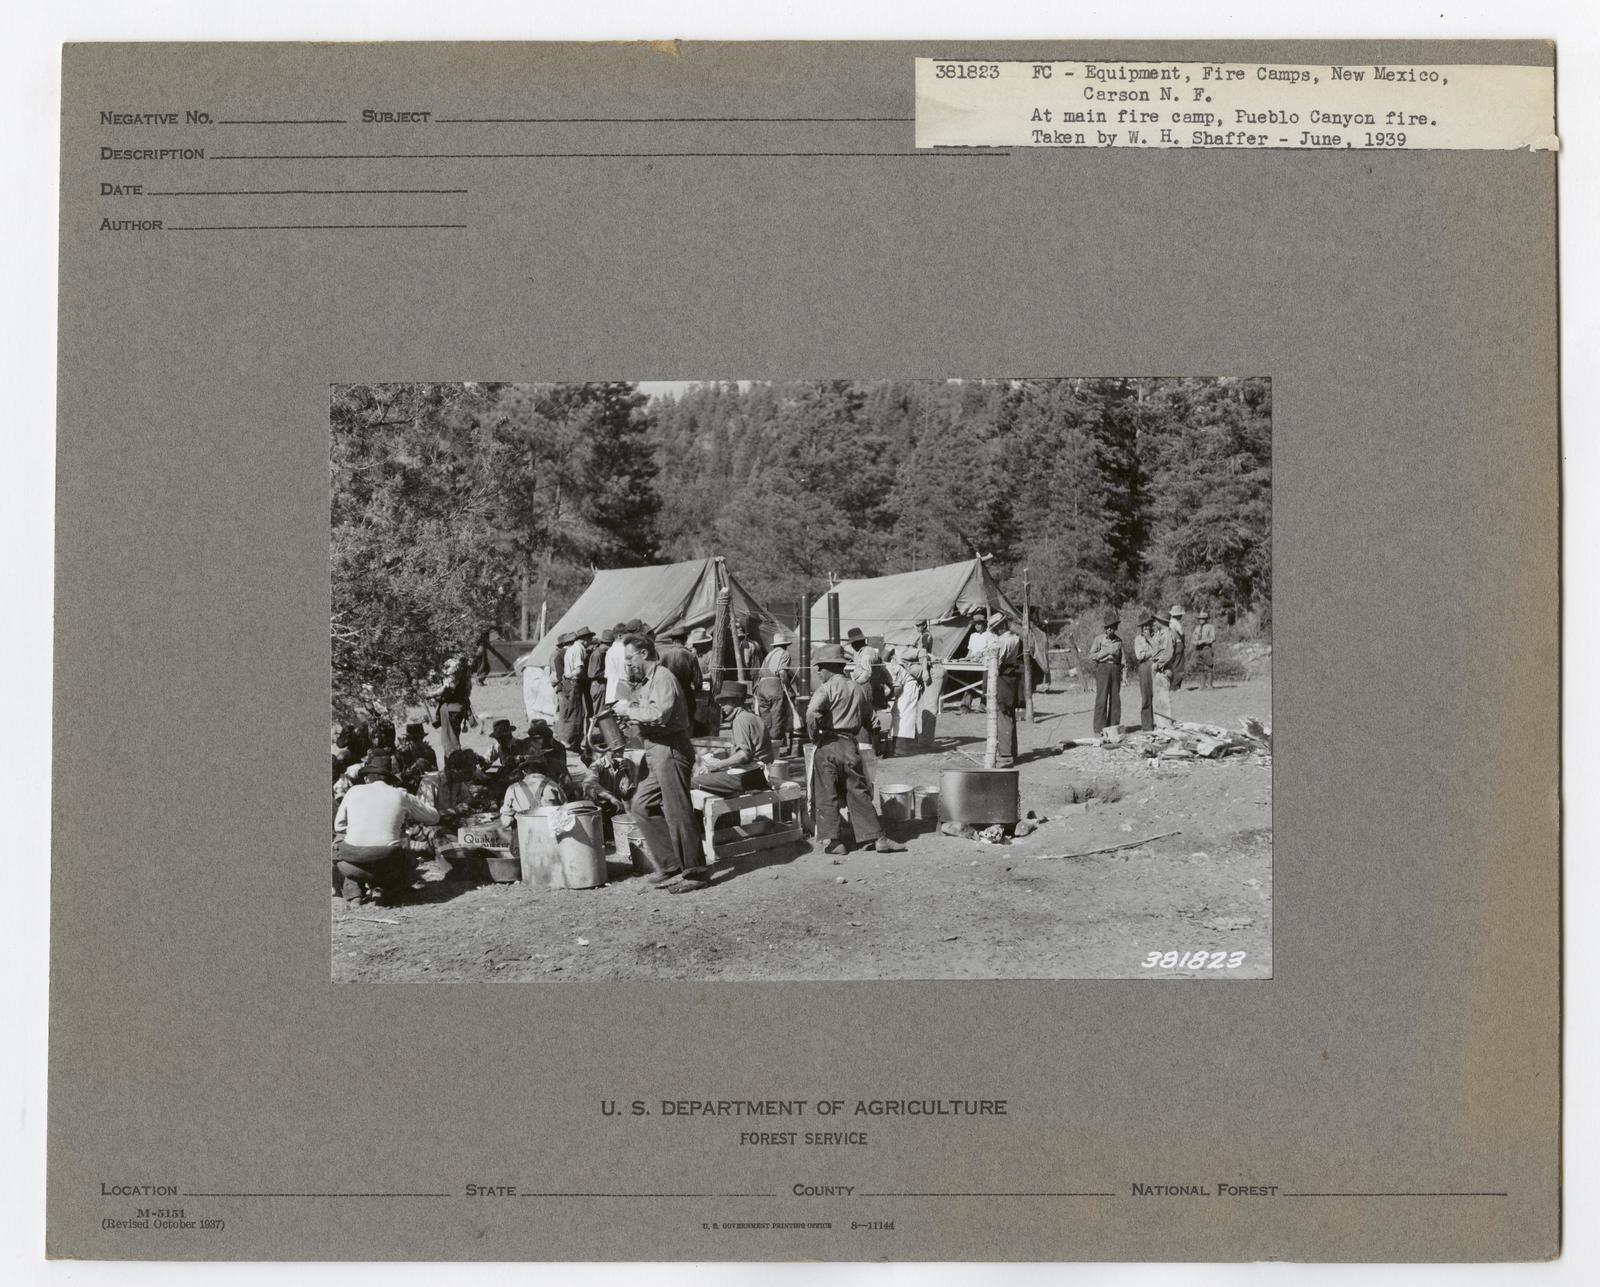 Forest Fire Camps - New Mexico